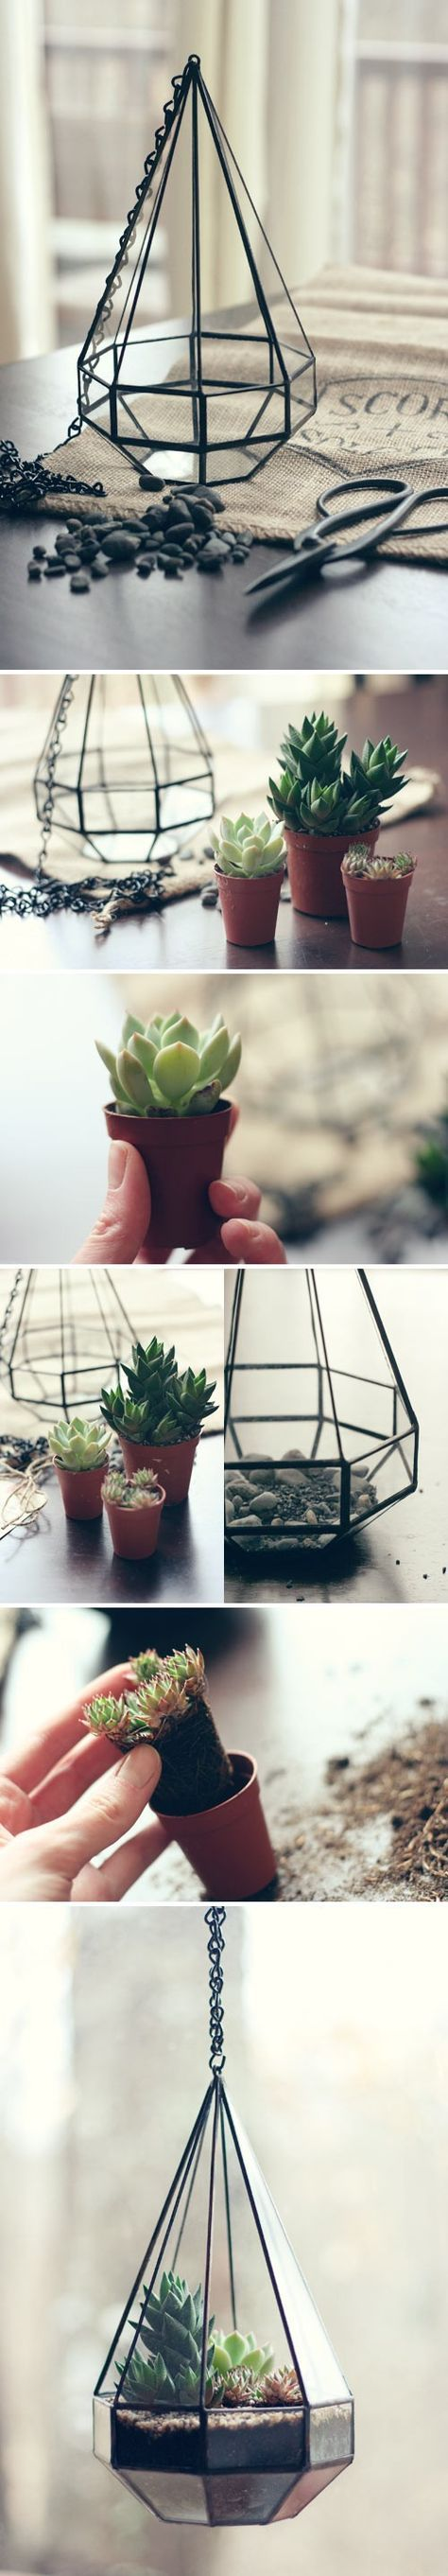 best растения images on pinterest small gardens succulents and